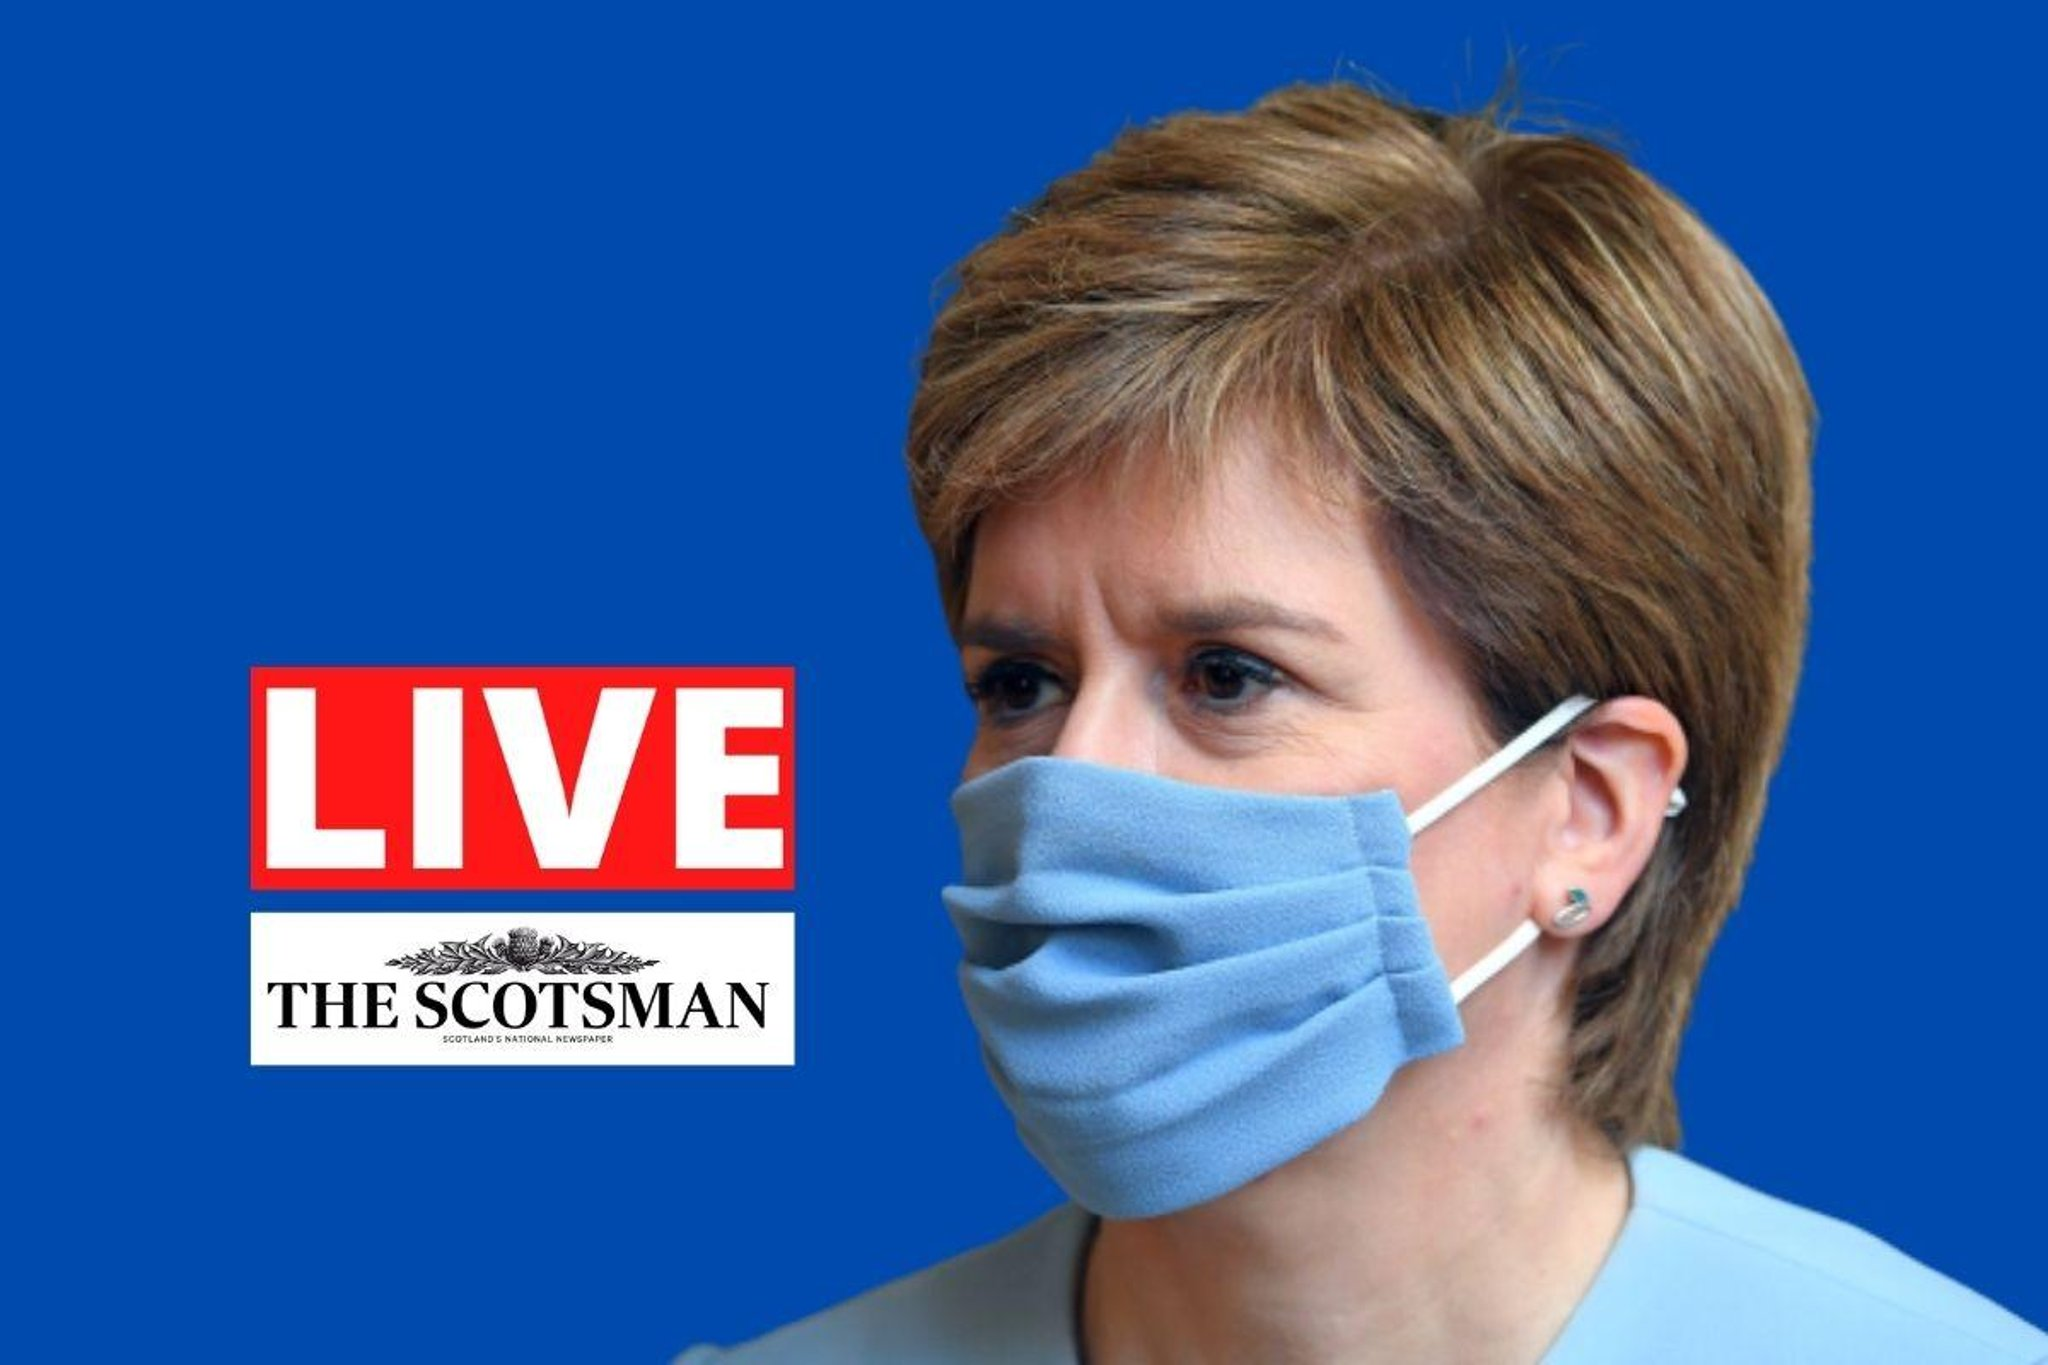 Nicola Sturgeon Covid update RECAP: First Minister confirms move to level 0 | Four deaths and 2,529 cases in 24 hours